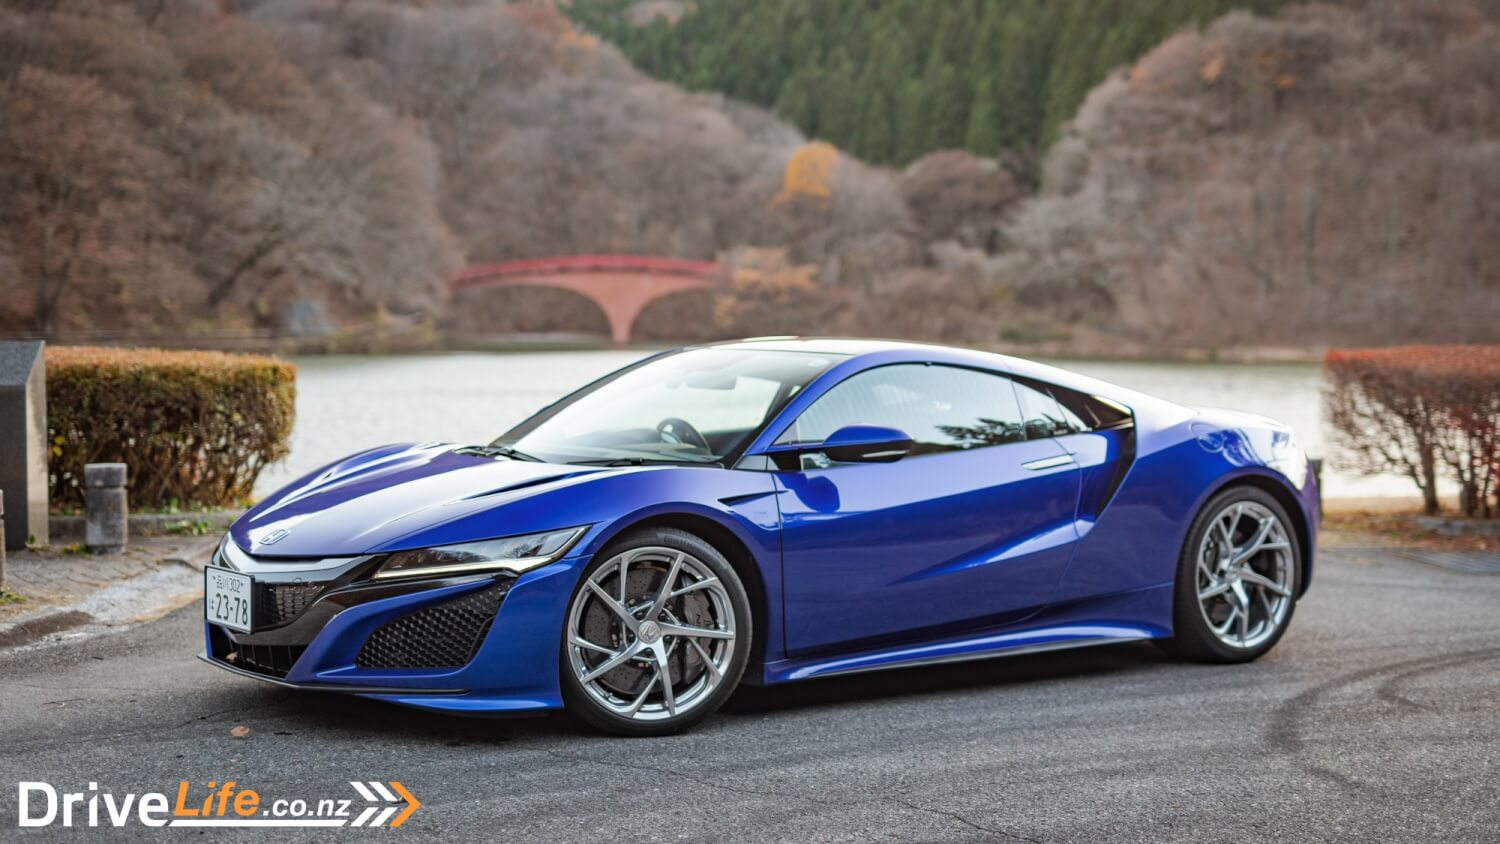 2018 Honda Nsx Car Review The Best Super Sports Car Money Can T Buy Yet Drivelife